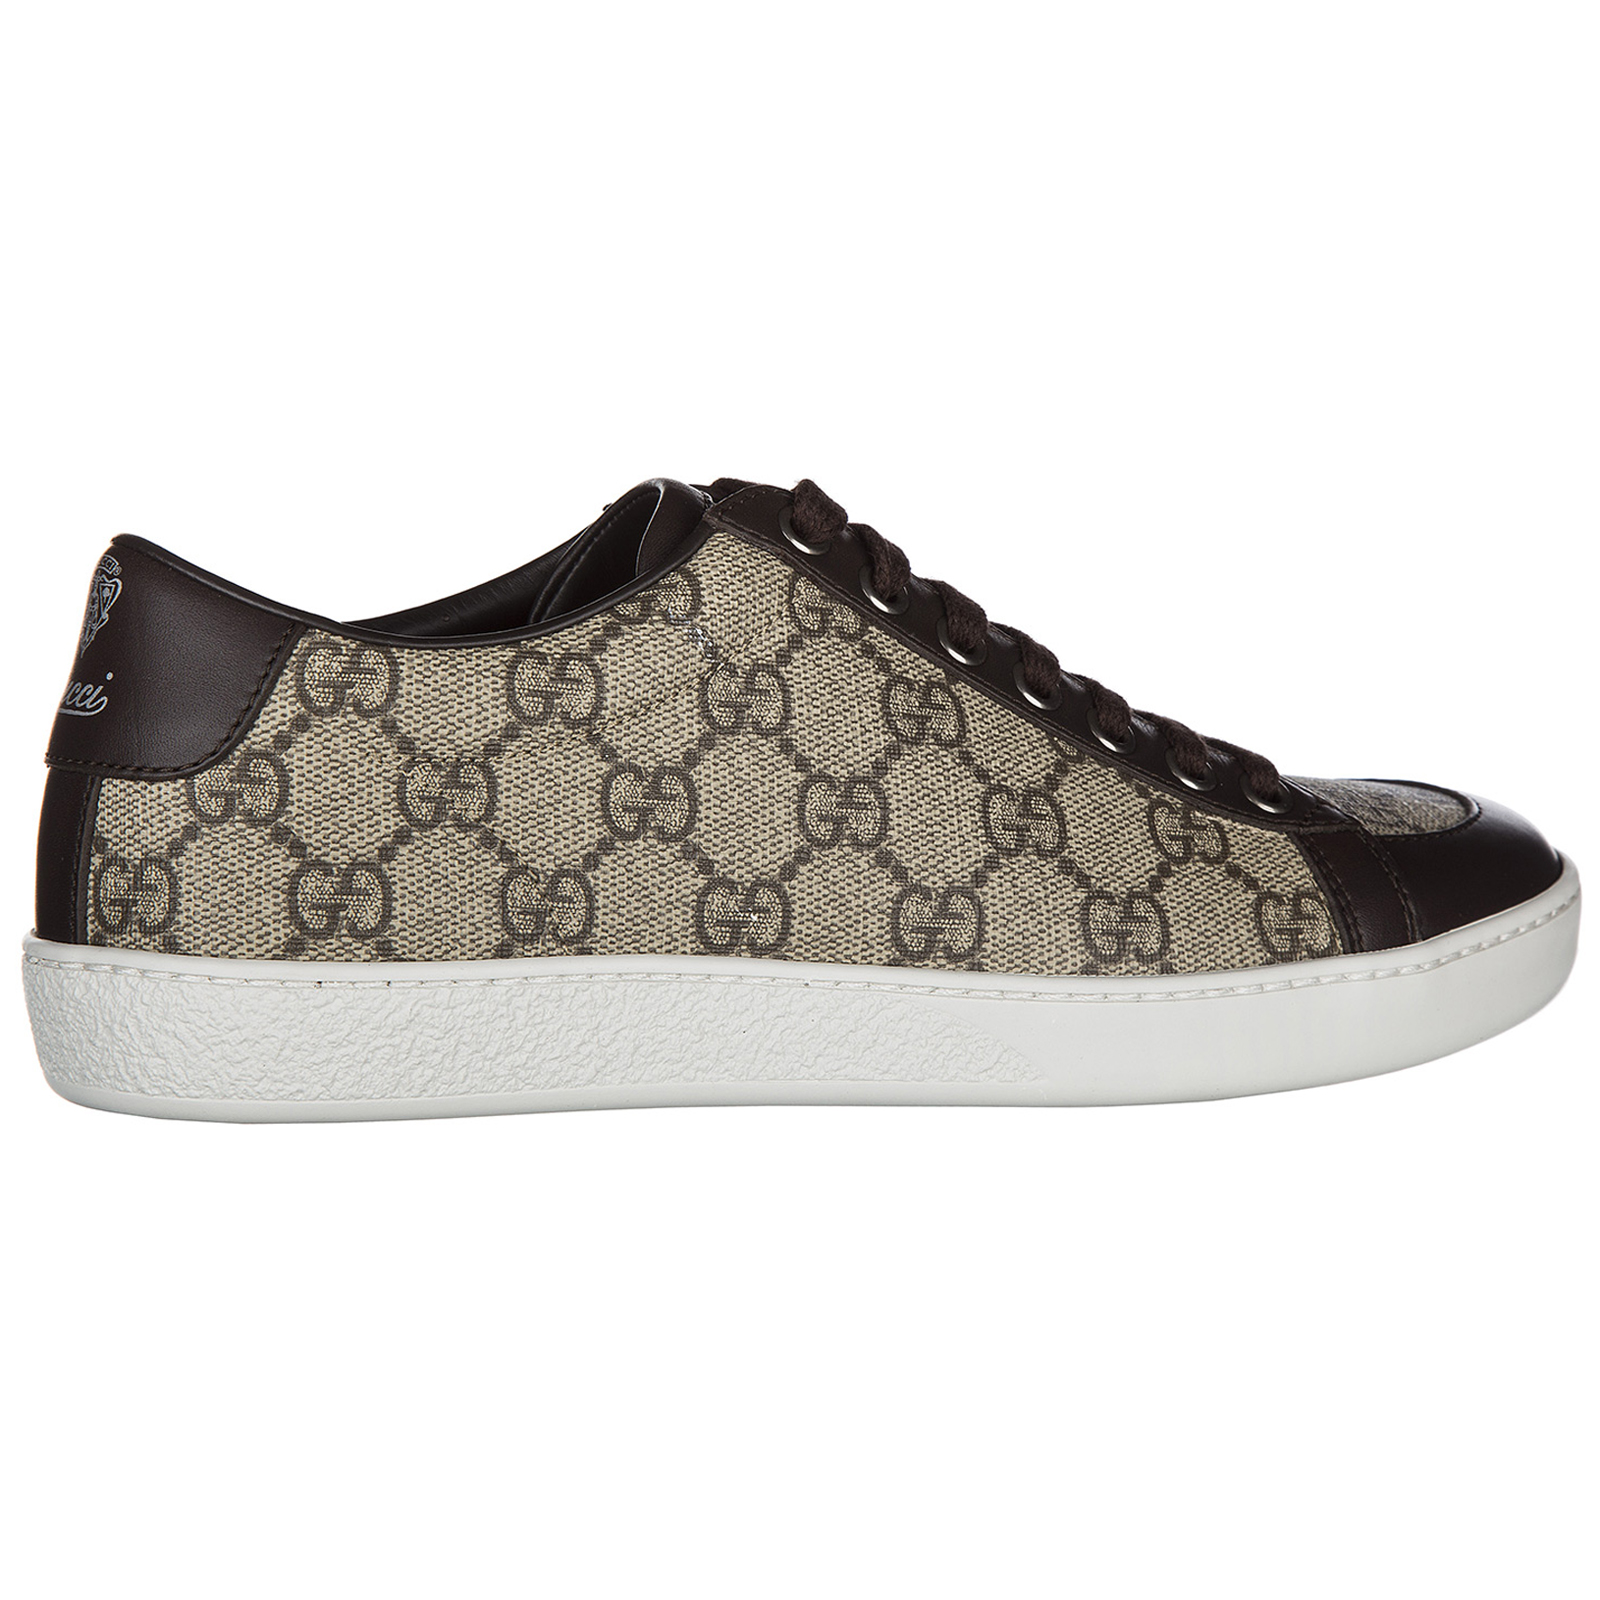 Chaussures baskets sneakers femme  gg supreme brooklyn